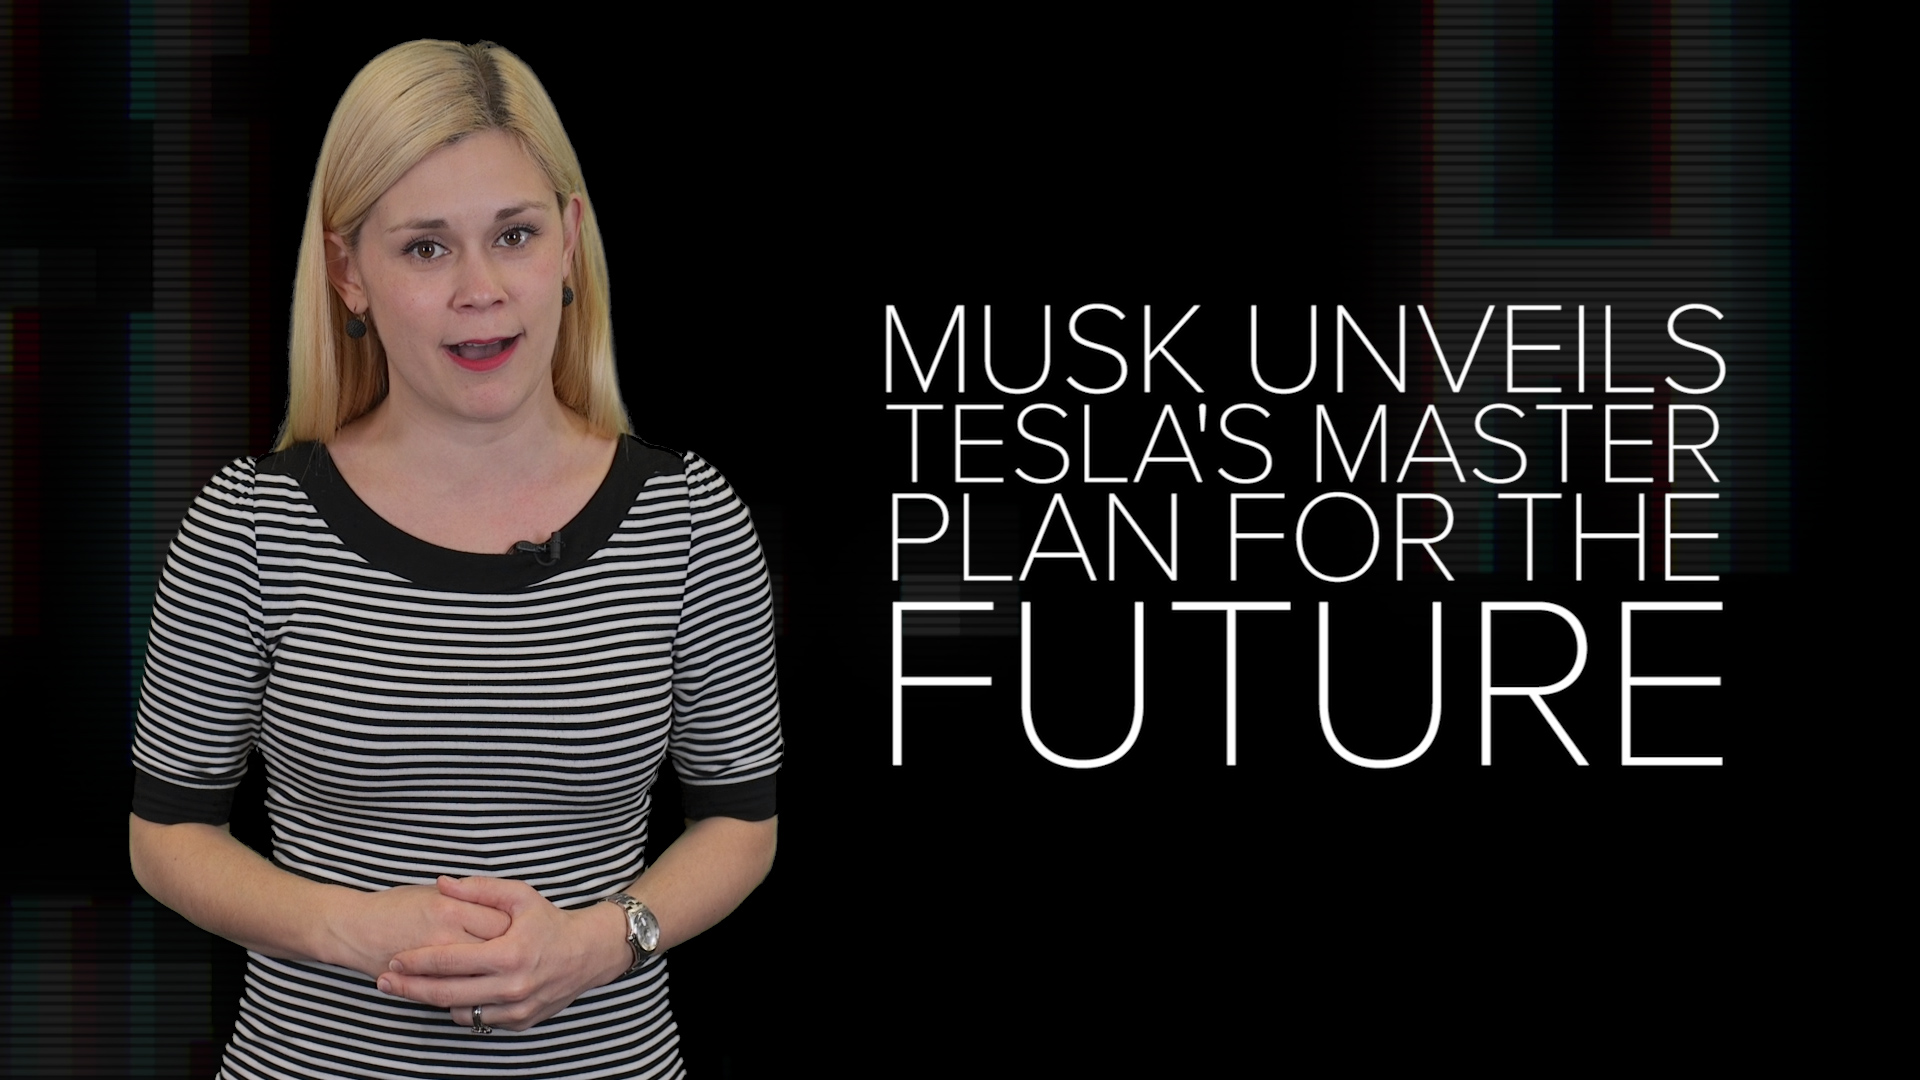 Video: Elon Musk unveils Tesla's master plan for the future